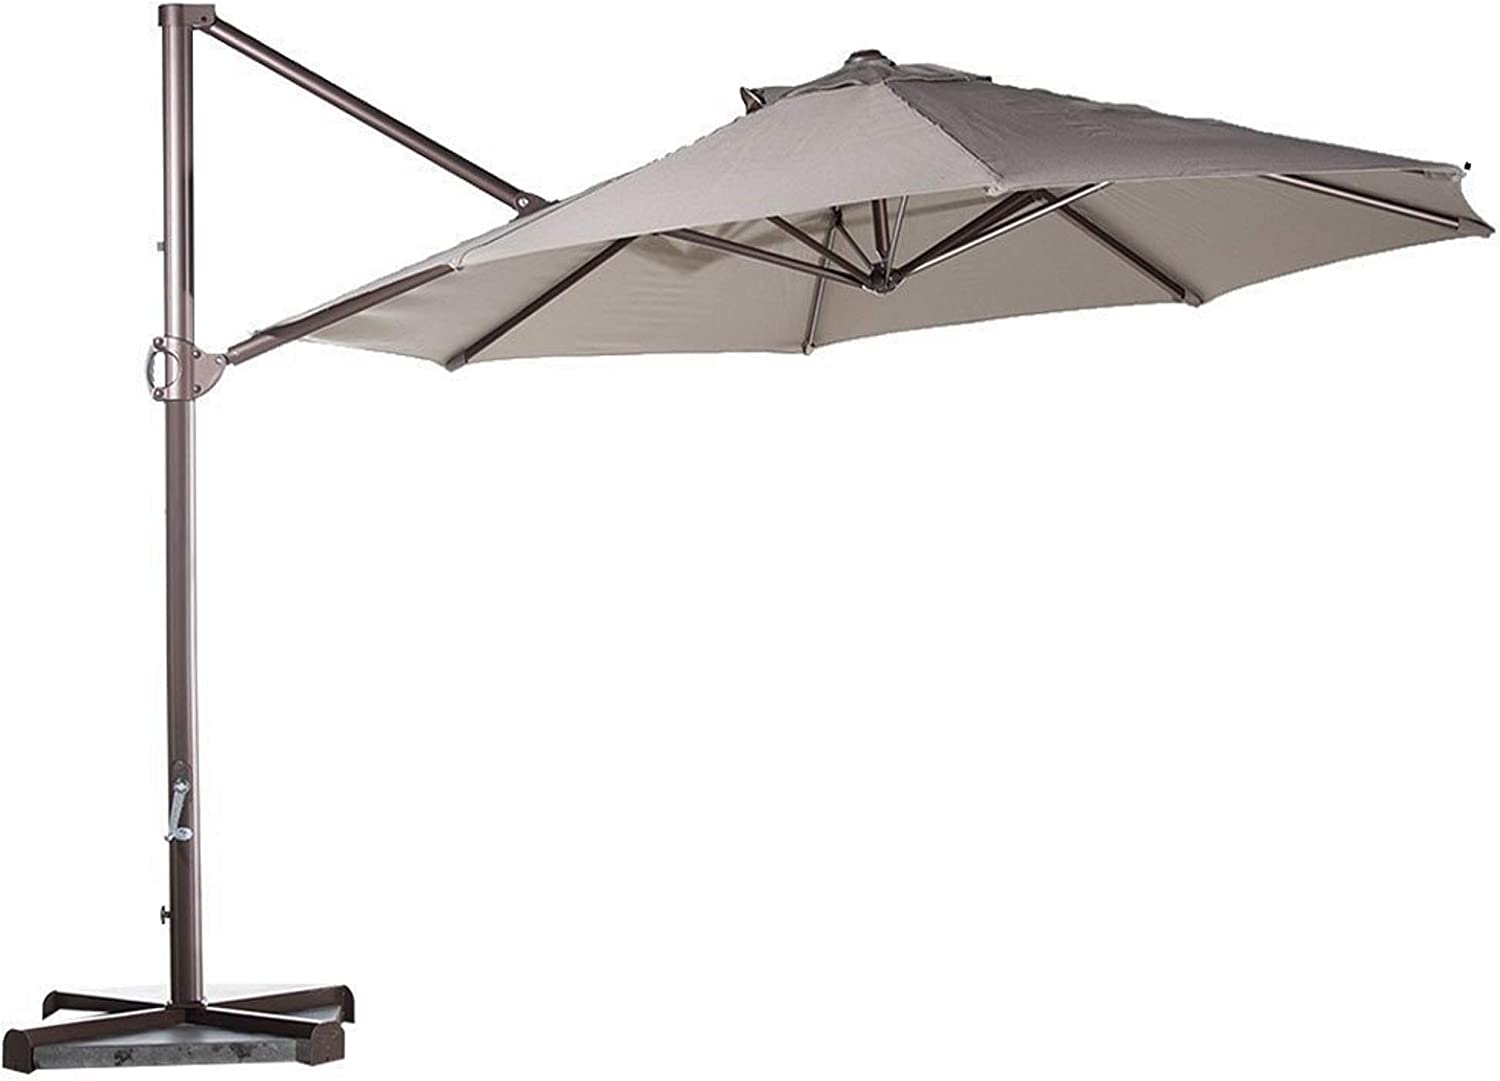 """Formosa Covers Replacement Umbrella Canopy for 11ft 8 Rib Supported bar Cantilever Market Outdoor Patio Shades in Taupe Ribs Length 64"""" to 66"""" (Canopy Only)"""